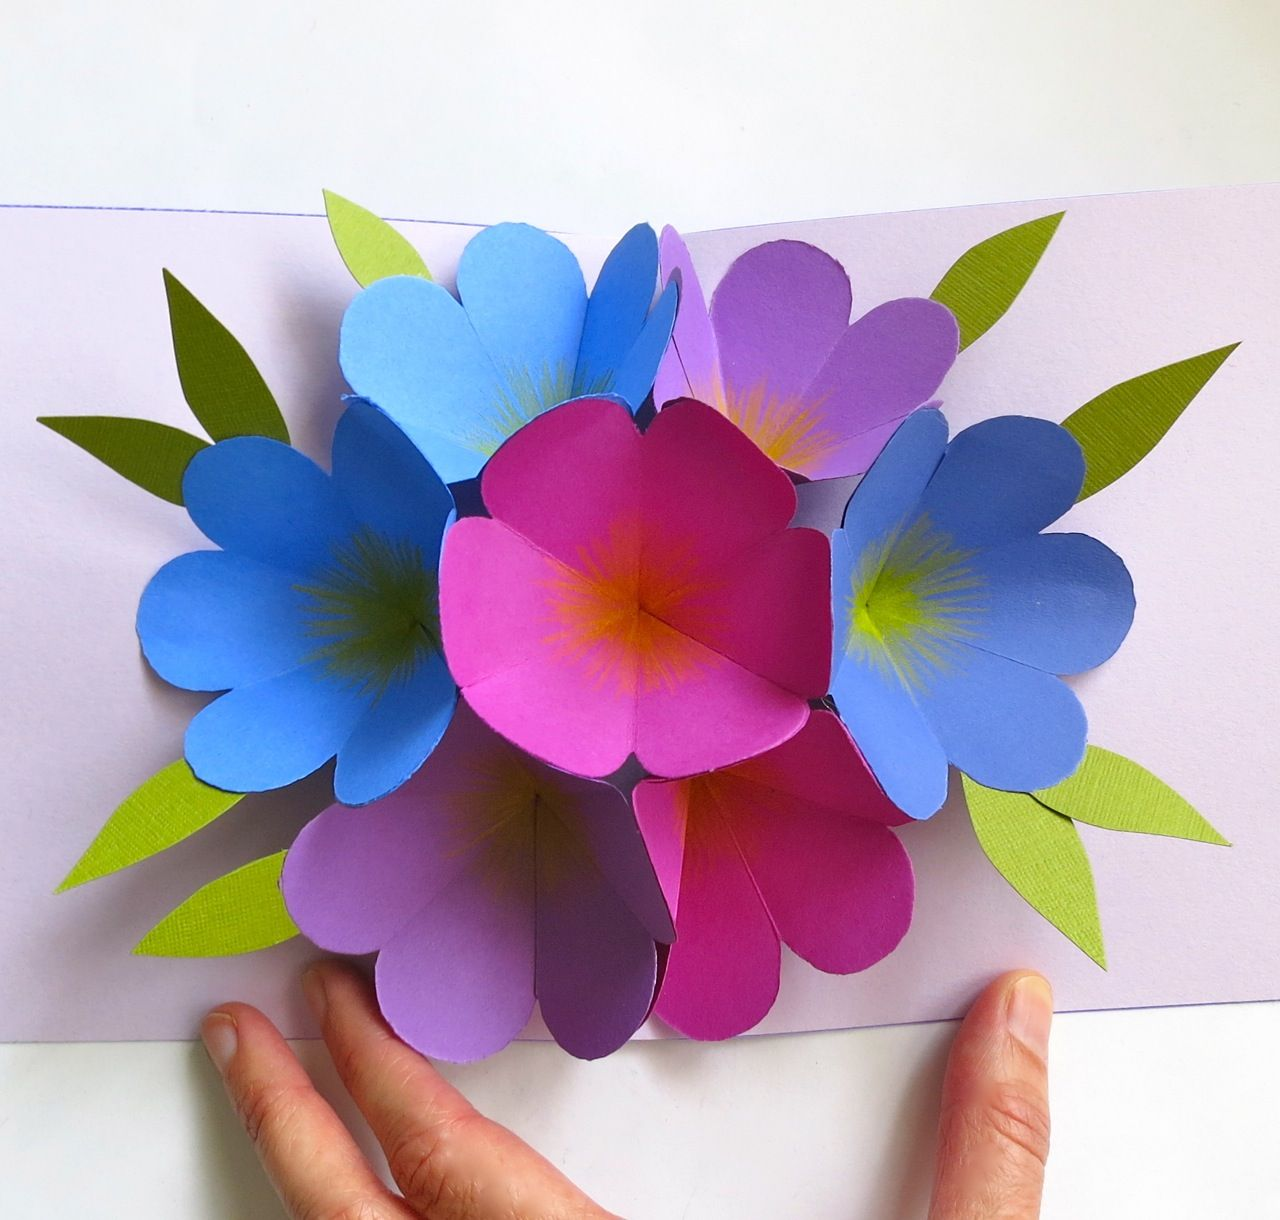 The Moment I Saw This Ms Mothers Day Card Project I Fell In Love